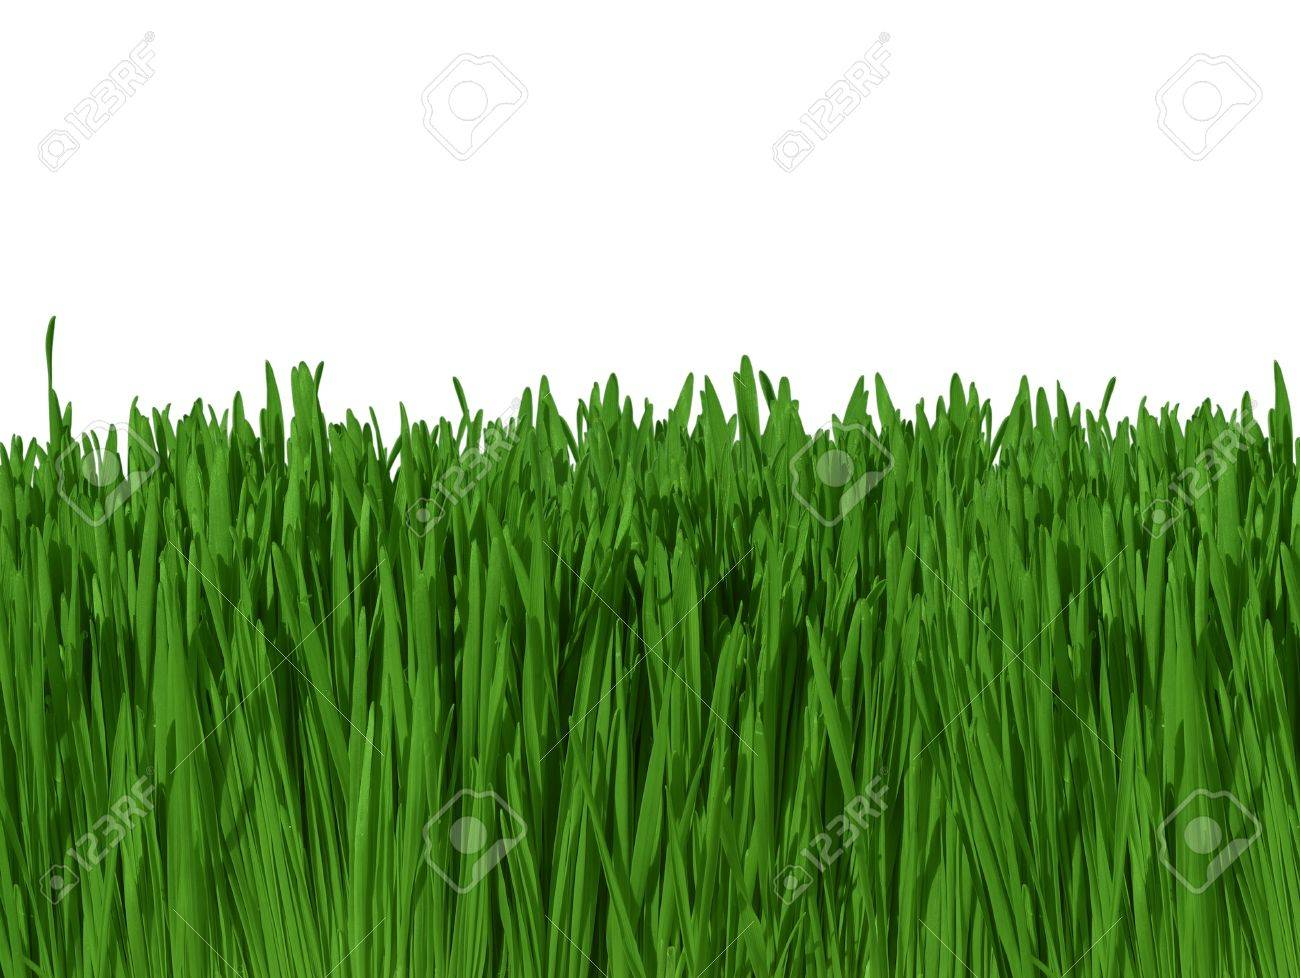 Background image 300 dpi - Background Of Green Grass Against Blue Sky Macro Focus 300dpi Includes Clipping Path